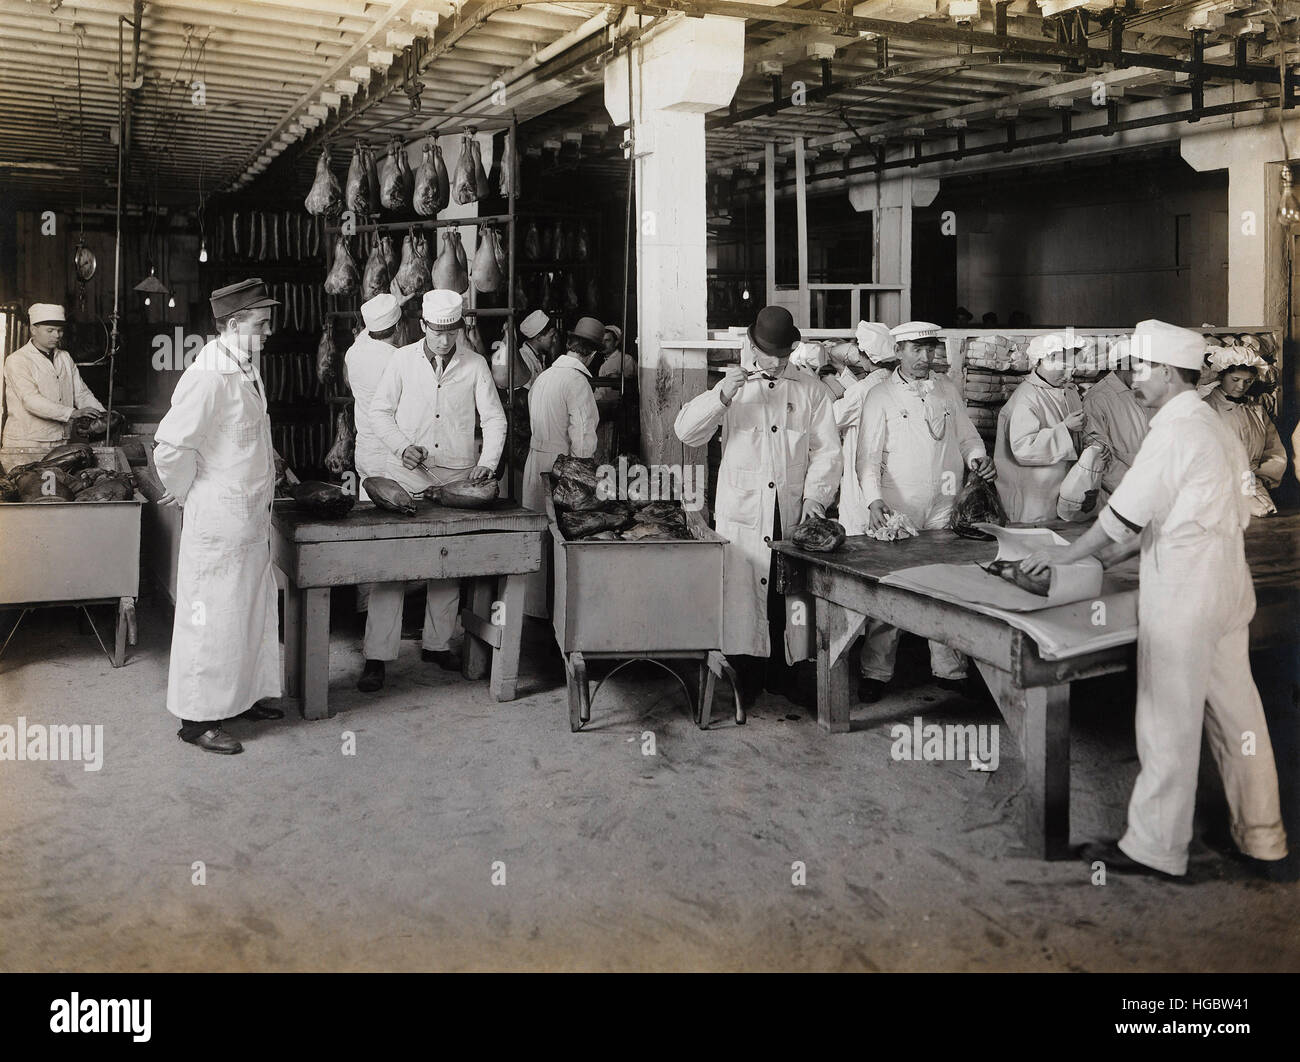 Branding smoked hams at the meat packing establishments, 1910. - Stock Image